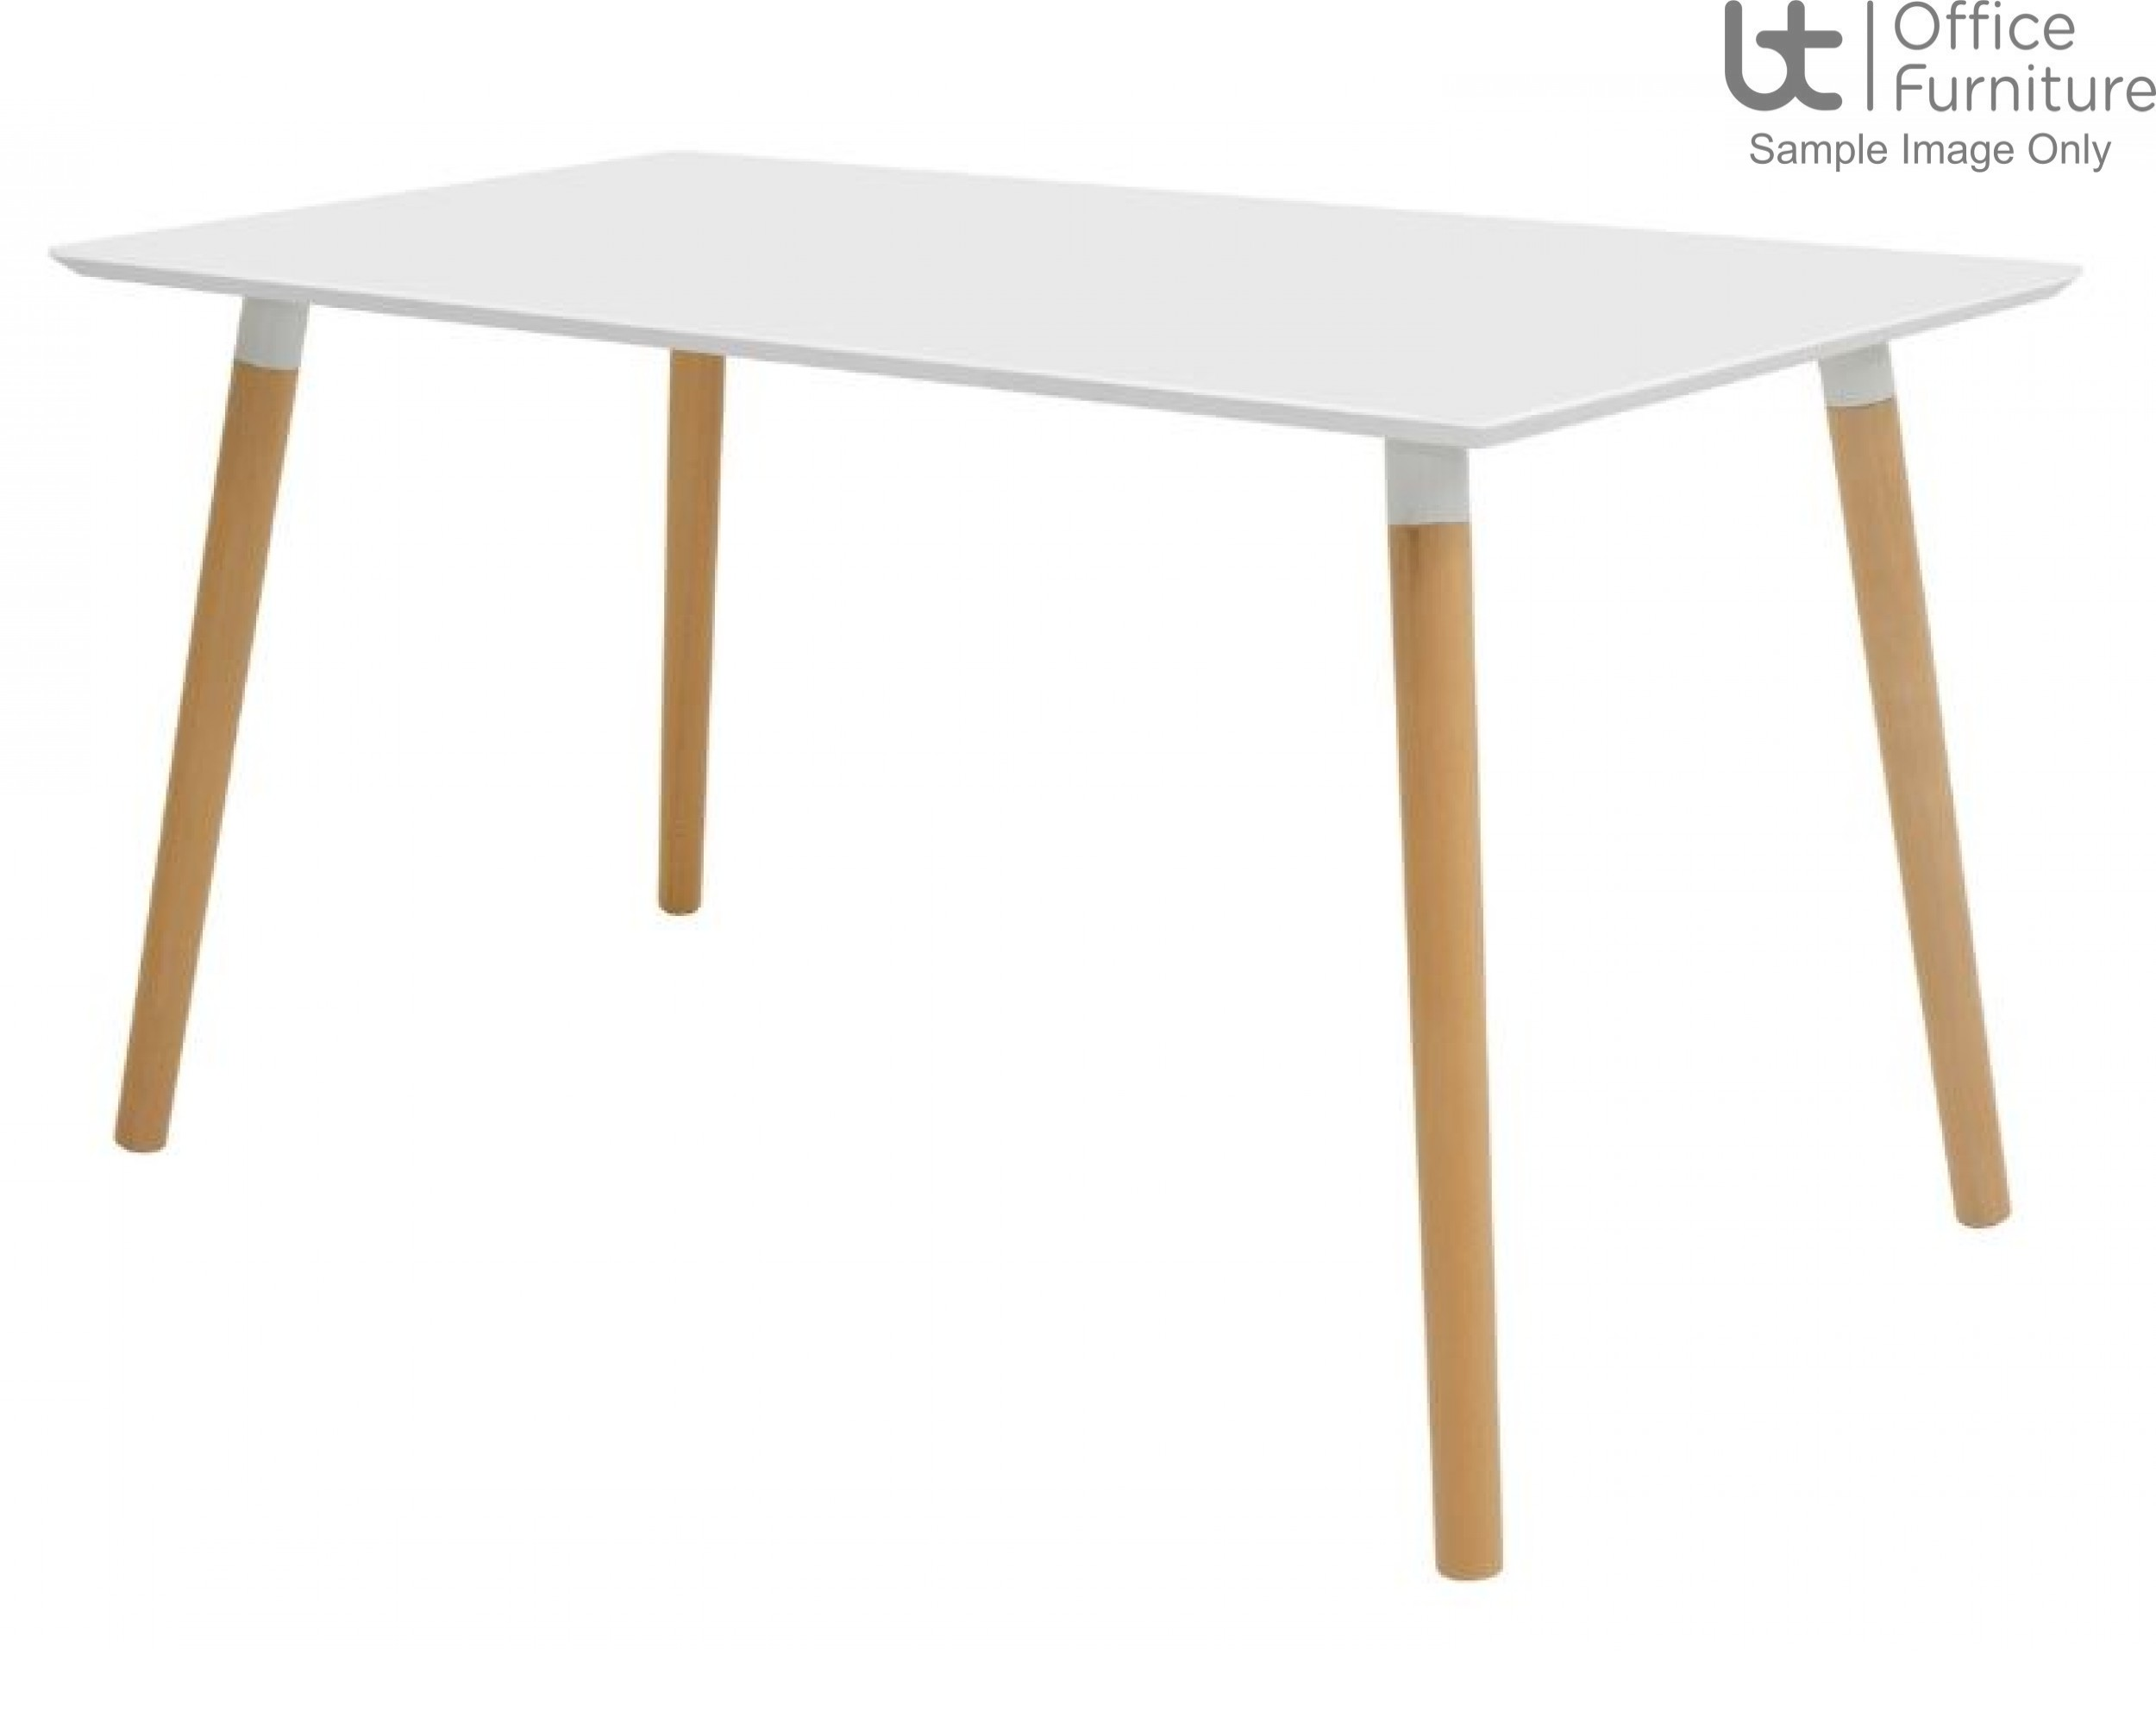 Elite Modular Meeting Table - Tondo Rectangular Table with round Solid Beech Wooden Legs & White Tops